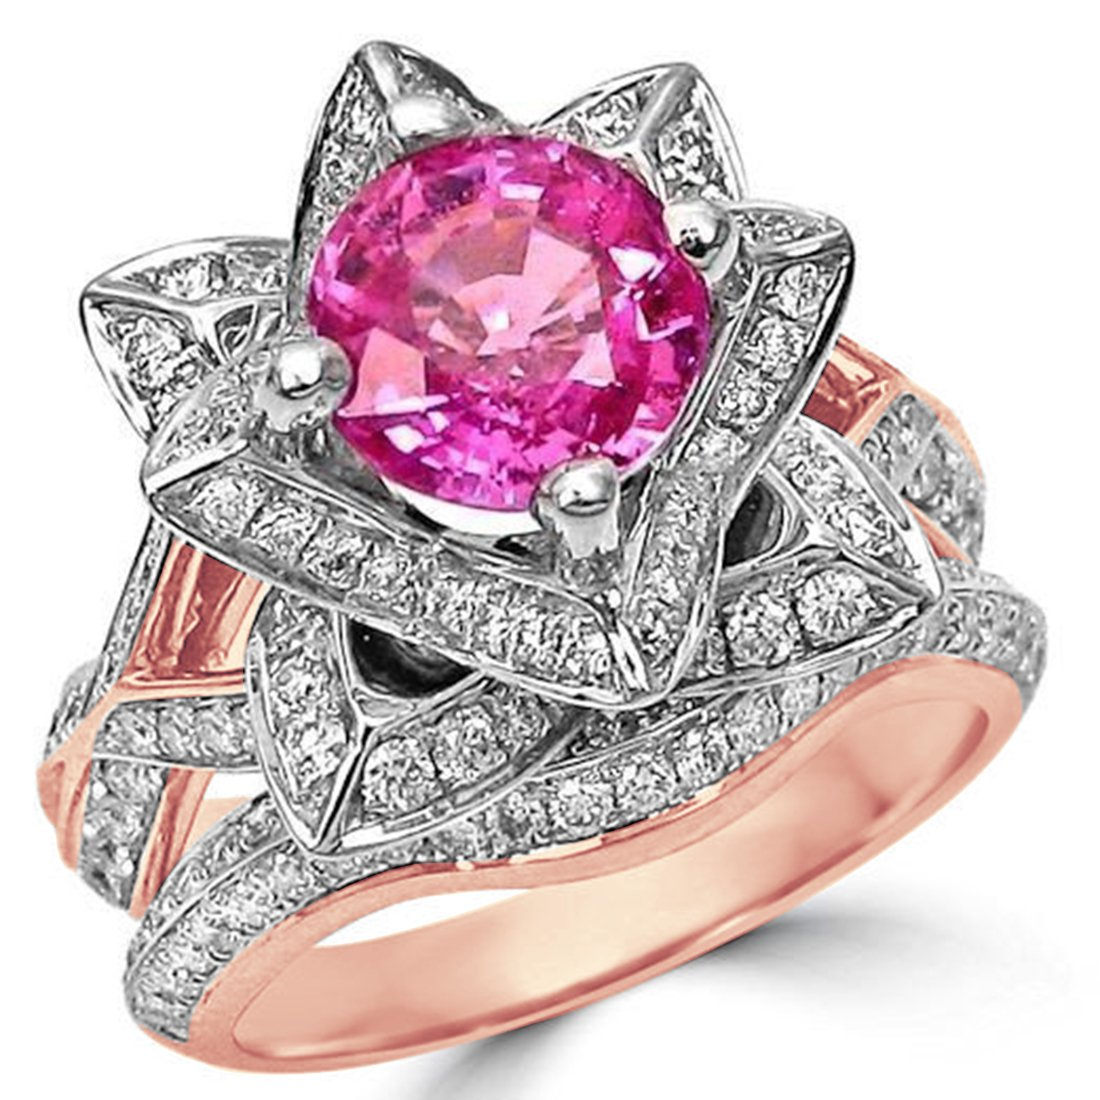 Smjewels 2.37 Ct Round Pink Sapphire Lotus Flower CZ Diamond Ring Bridal Set 14K Rose Gold Fn